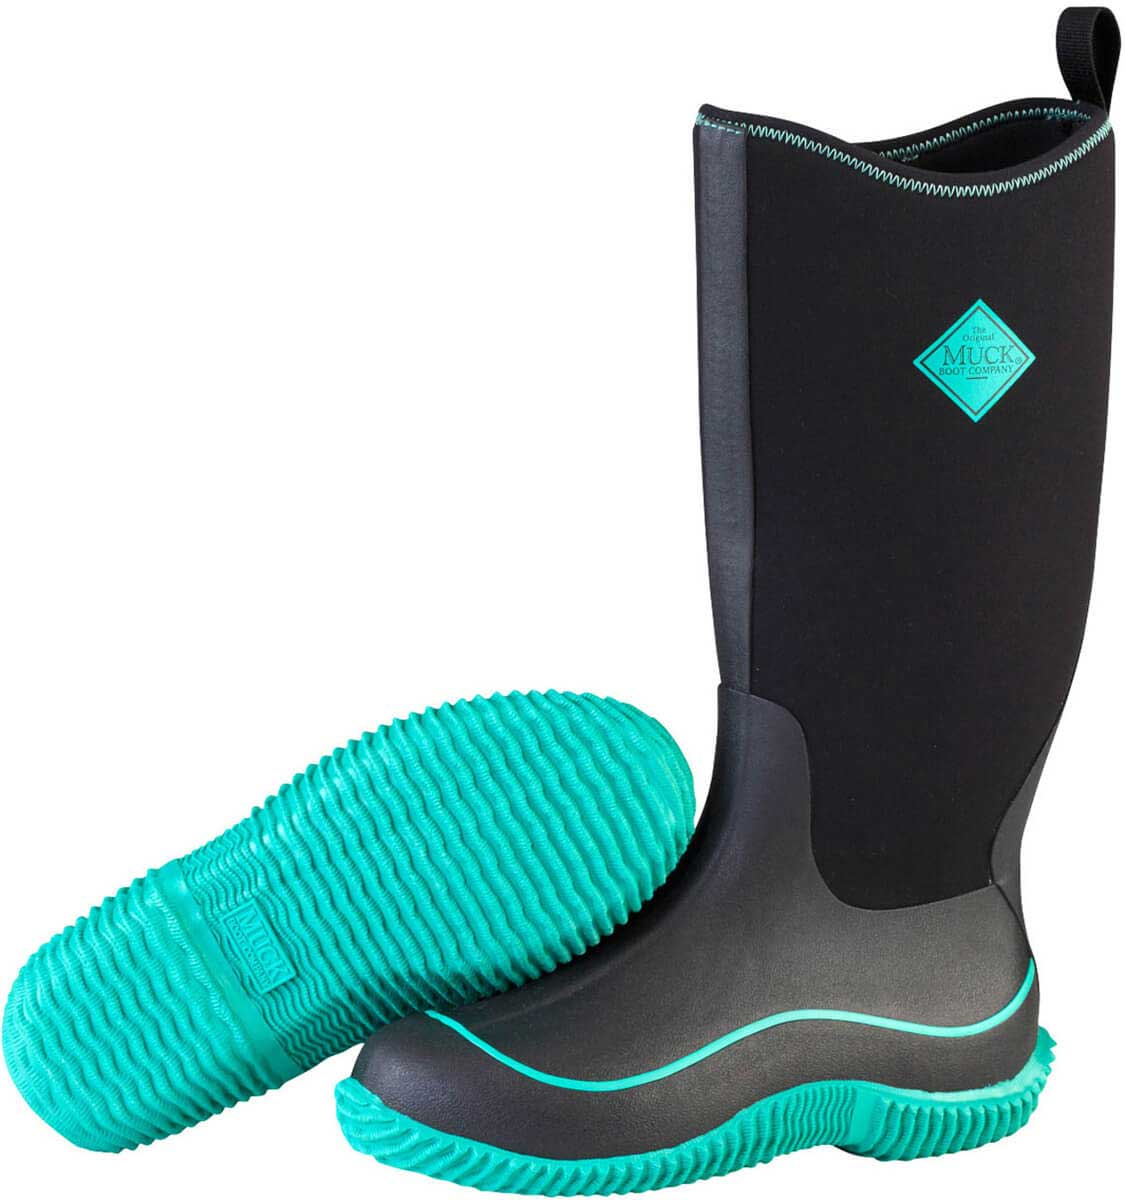 Brilliant Muck Boots Chore Series Provides Dry, Comfortable Footwear Thats Built To Handle Even The Toughest Job A Work Boot With A Stretchfit Topline Binding Stays Snug At The Calf To Keep Warmth In And Cold Out The Muck 5mm NEOPRENE